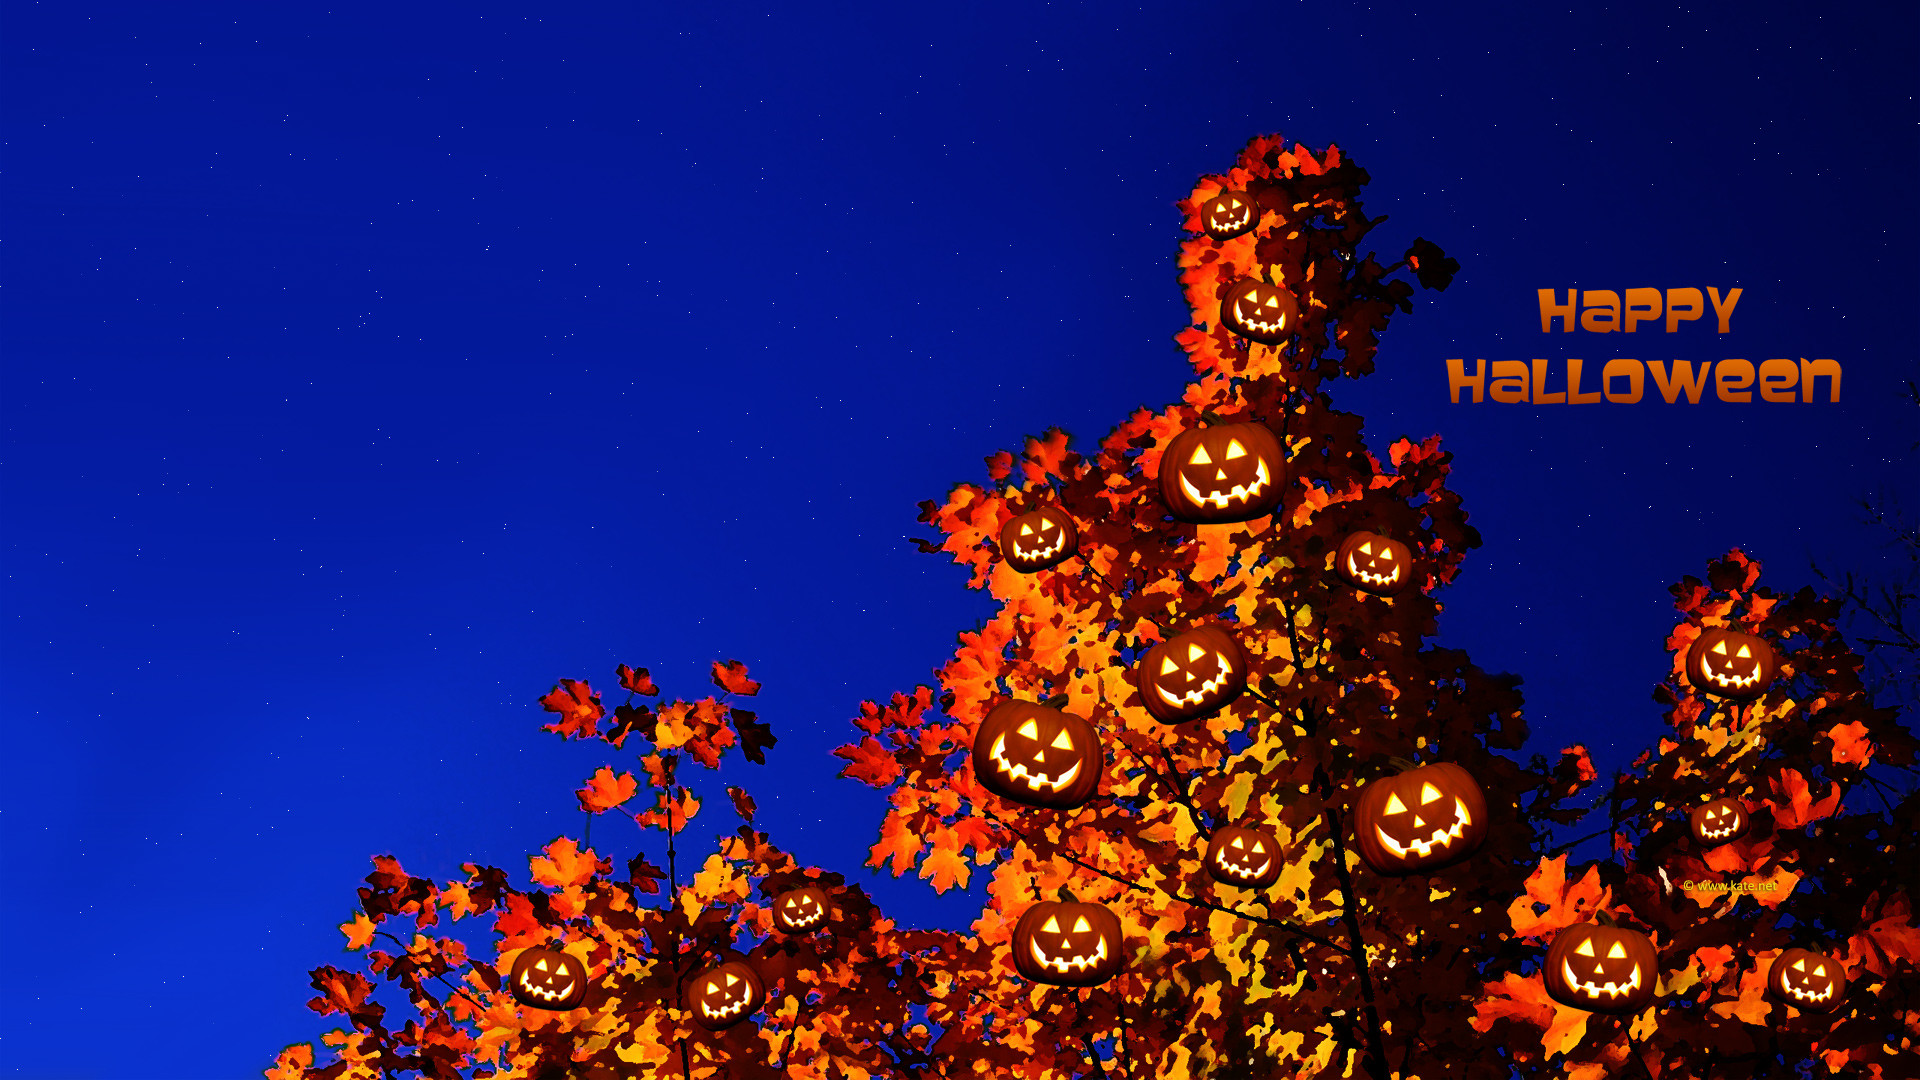 1920x1080 Halloween Wallpapers, Halloween Desktop Backgrounds on Kate.net, Page 1